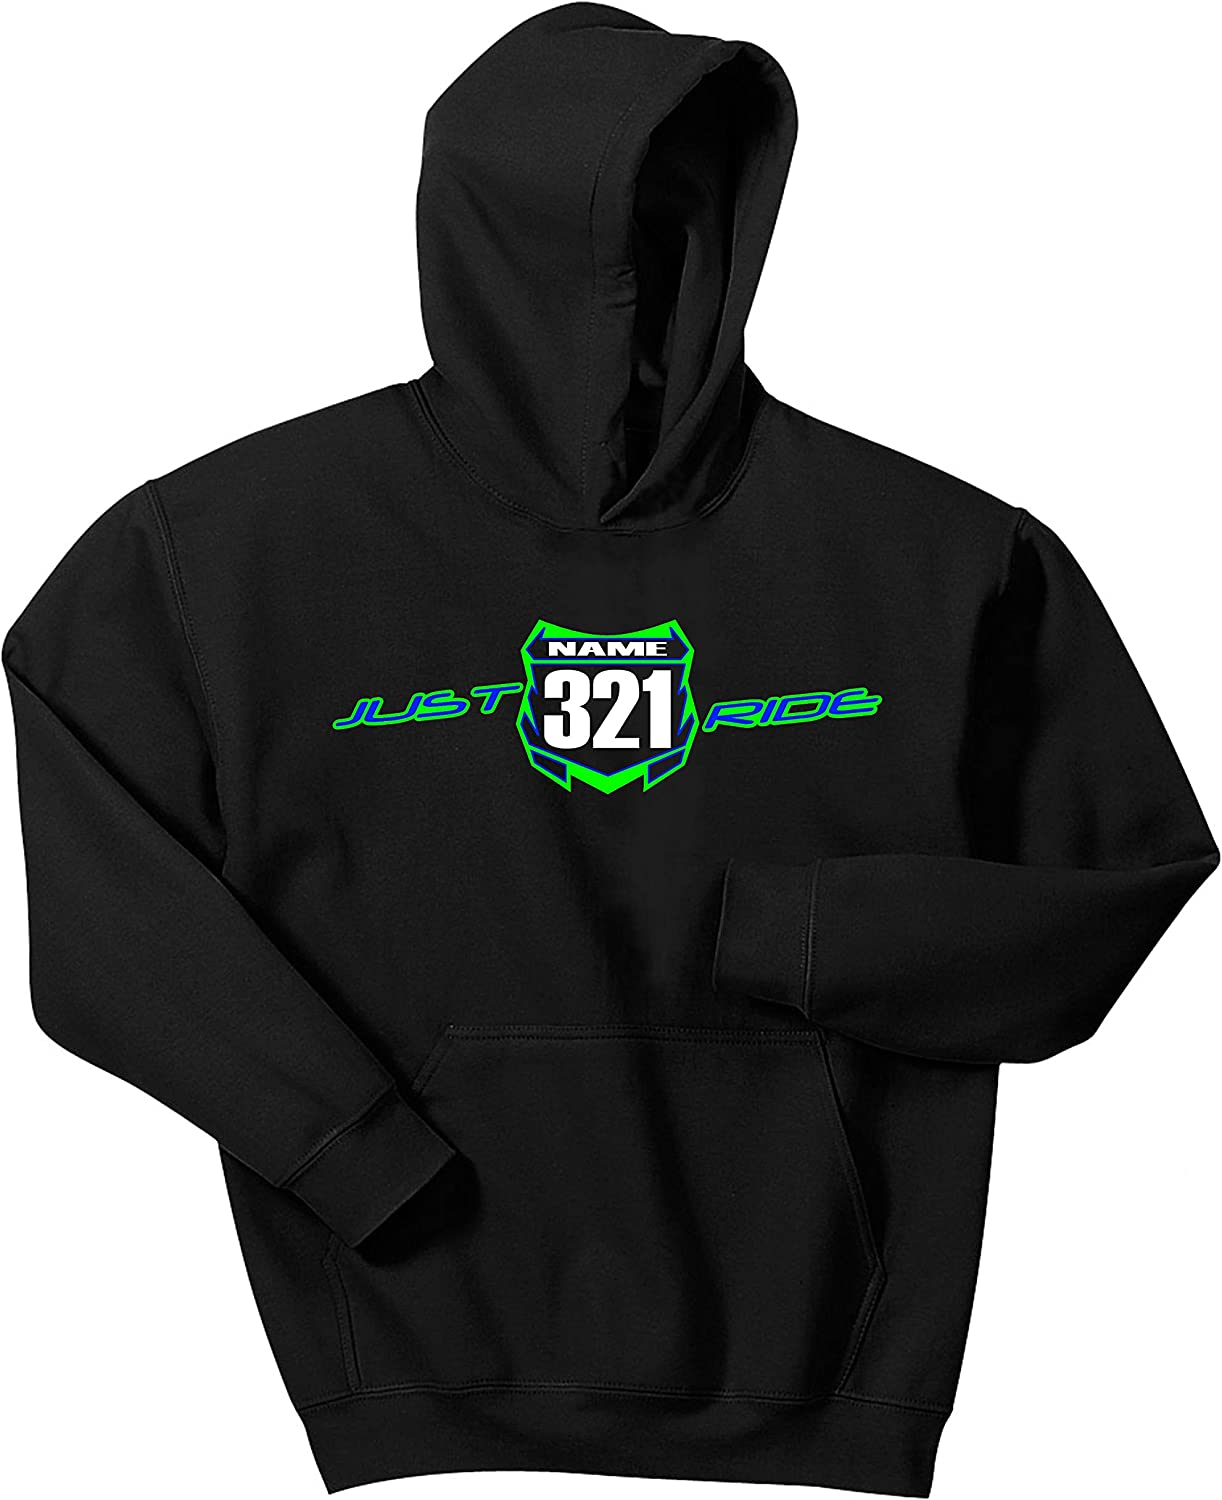 Just Ride Motocross Youth Hoodie Number Plate Custom Personalized Sweat Shirt